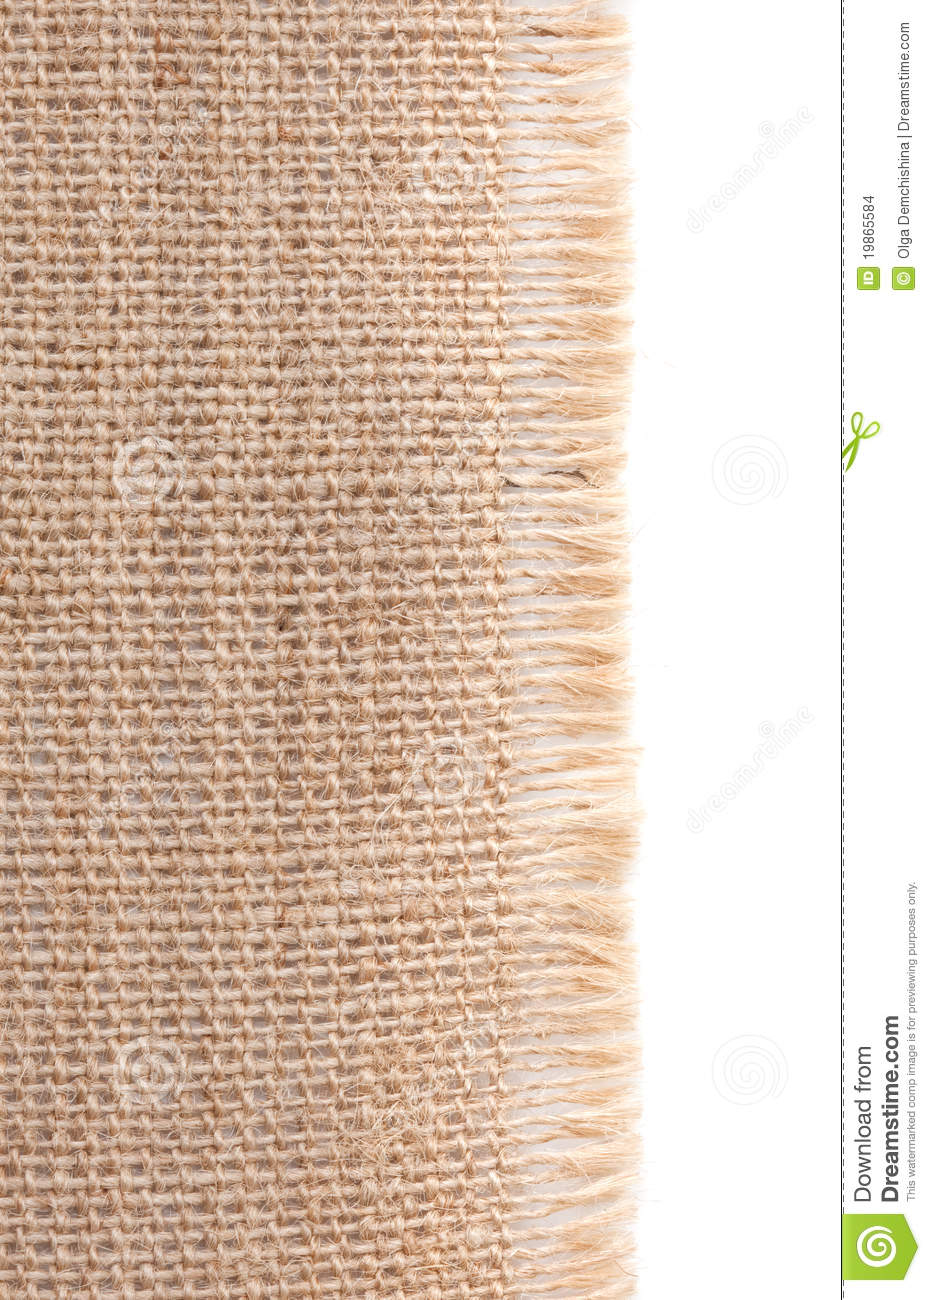 Burlap With Frayed Edges Stock Images.